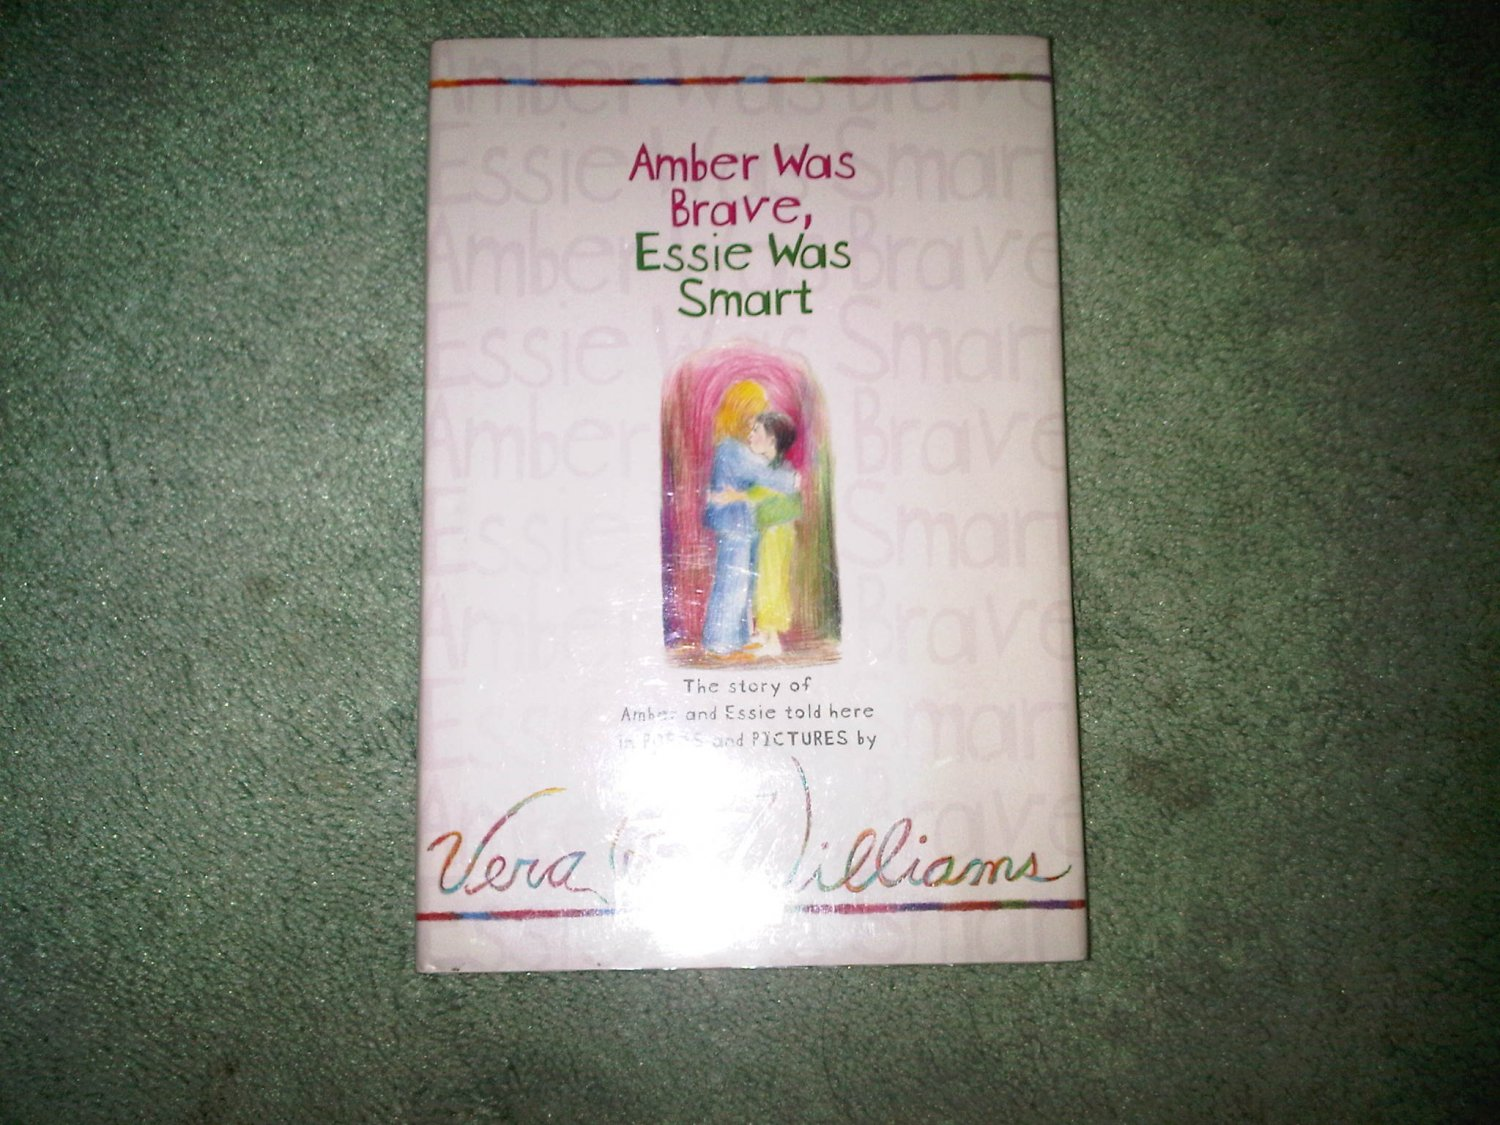 AMBER WAS BRAVE VERA WILLIAMS hardcover book books children's illustrated home activity